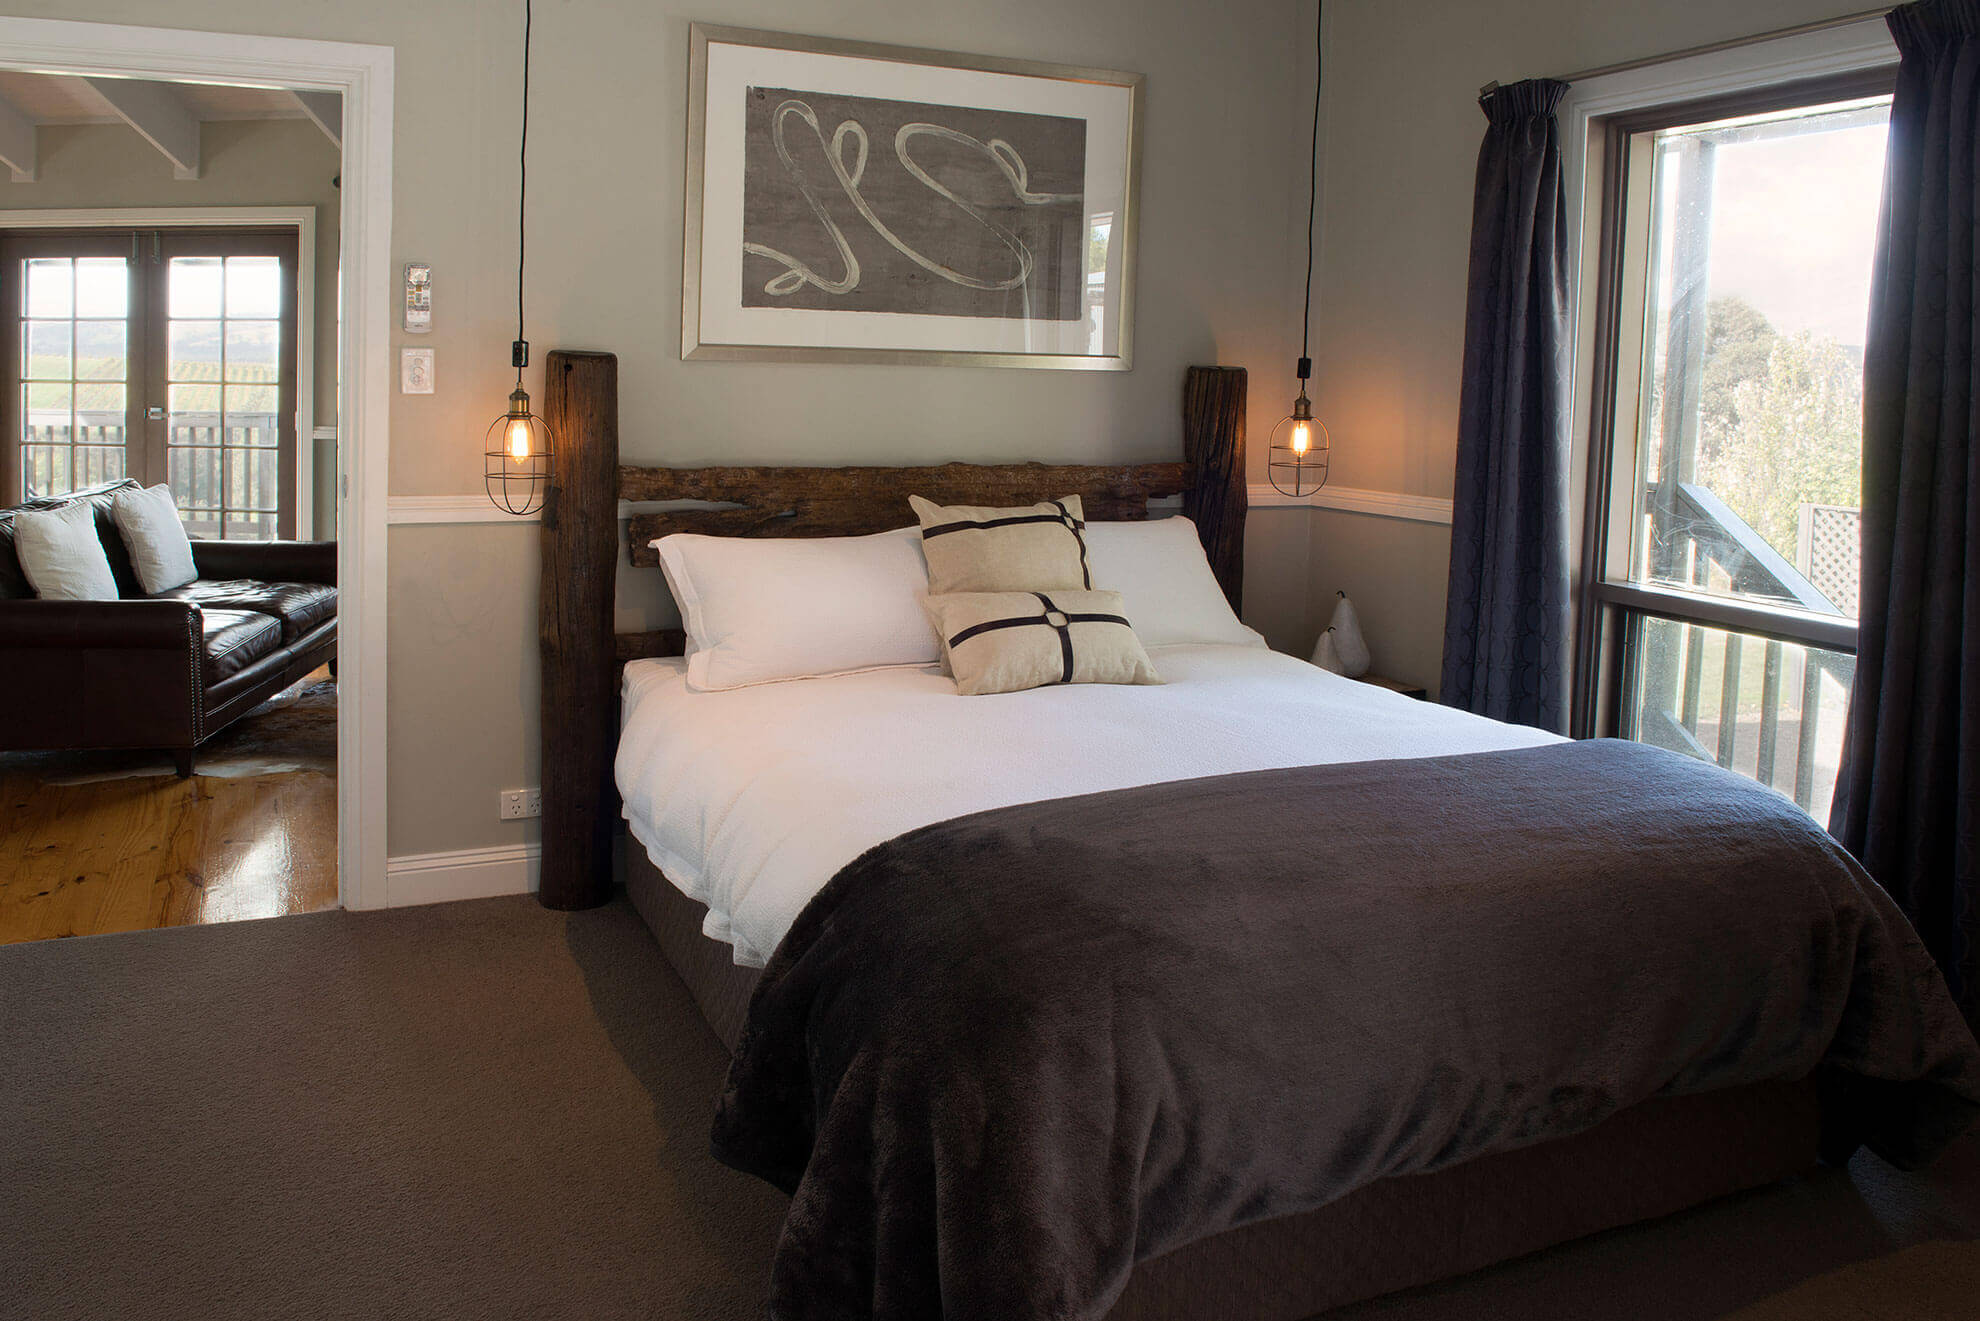 Luxury accomodation bedding McLaren Vale